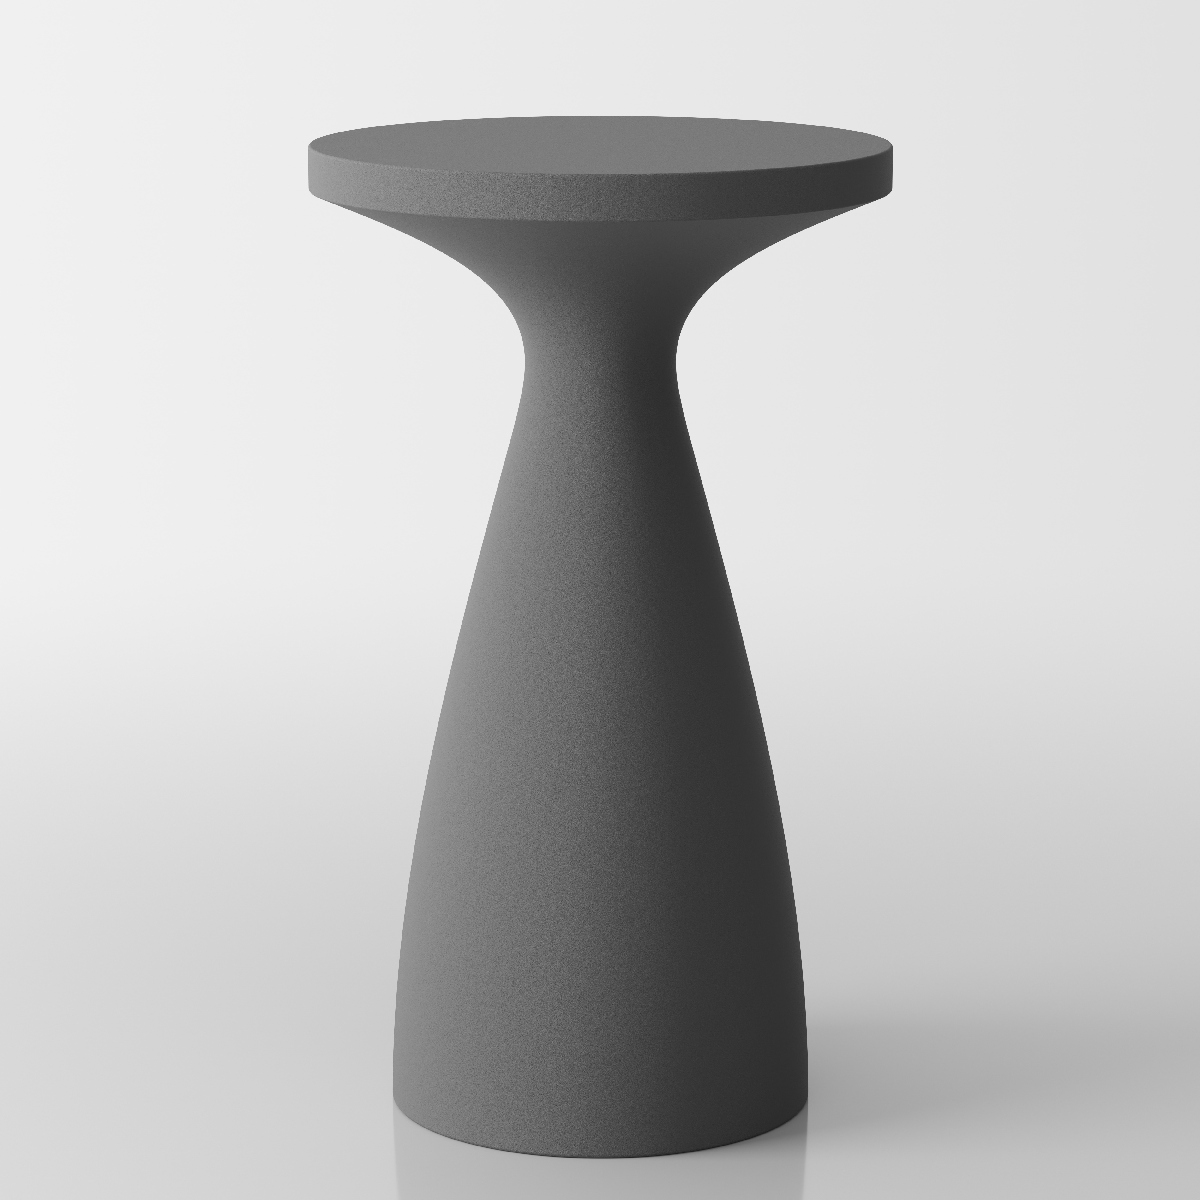 Drink modern bistro high table aperitfs - grey 1